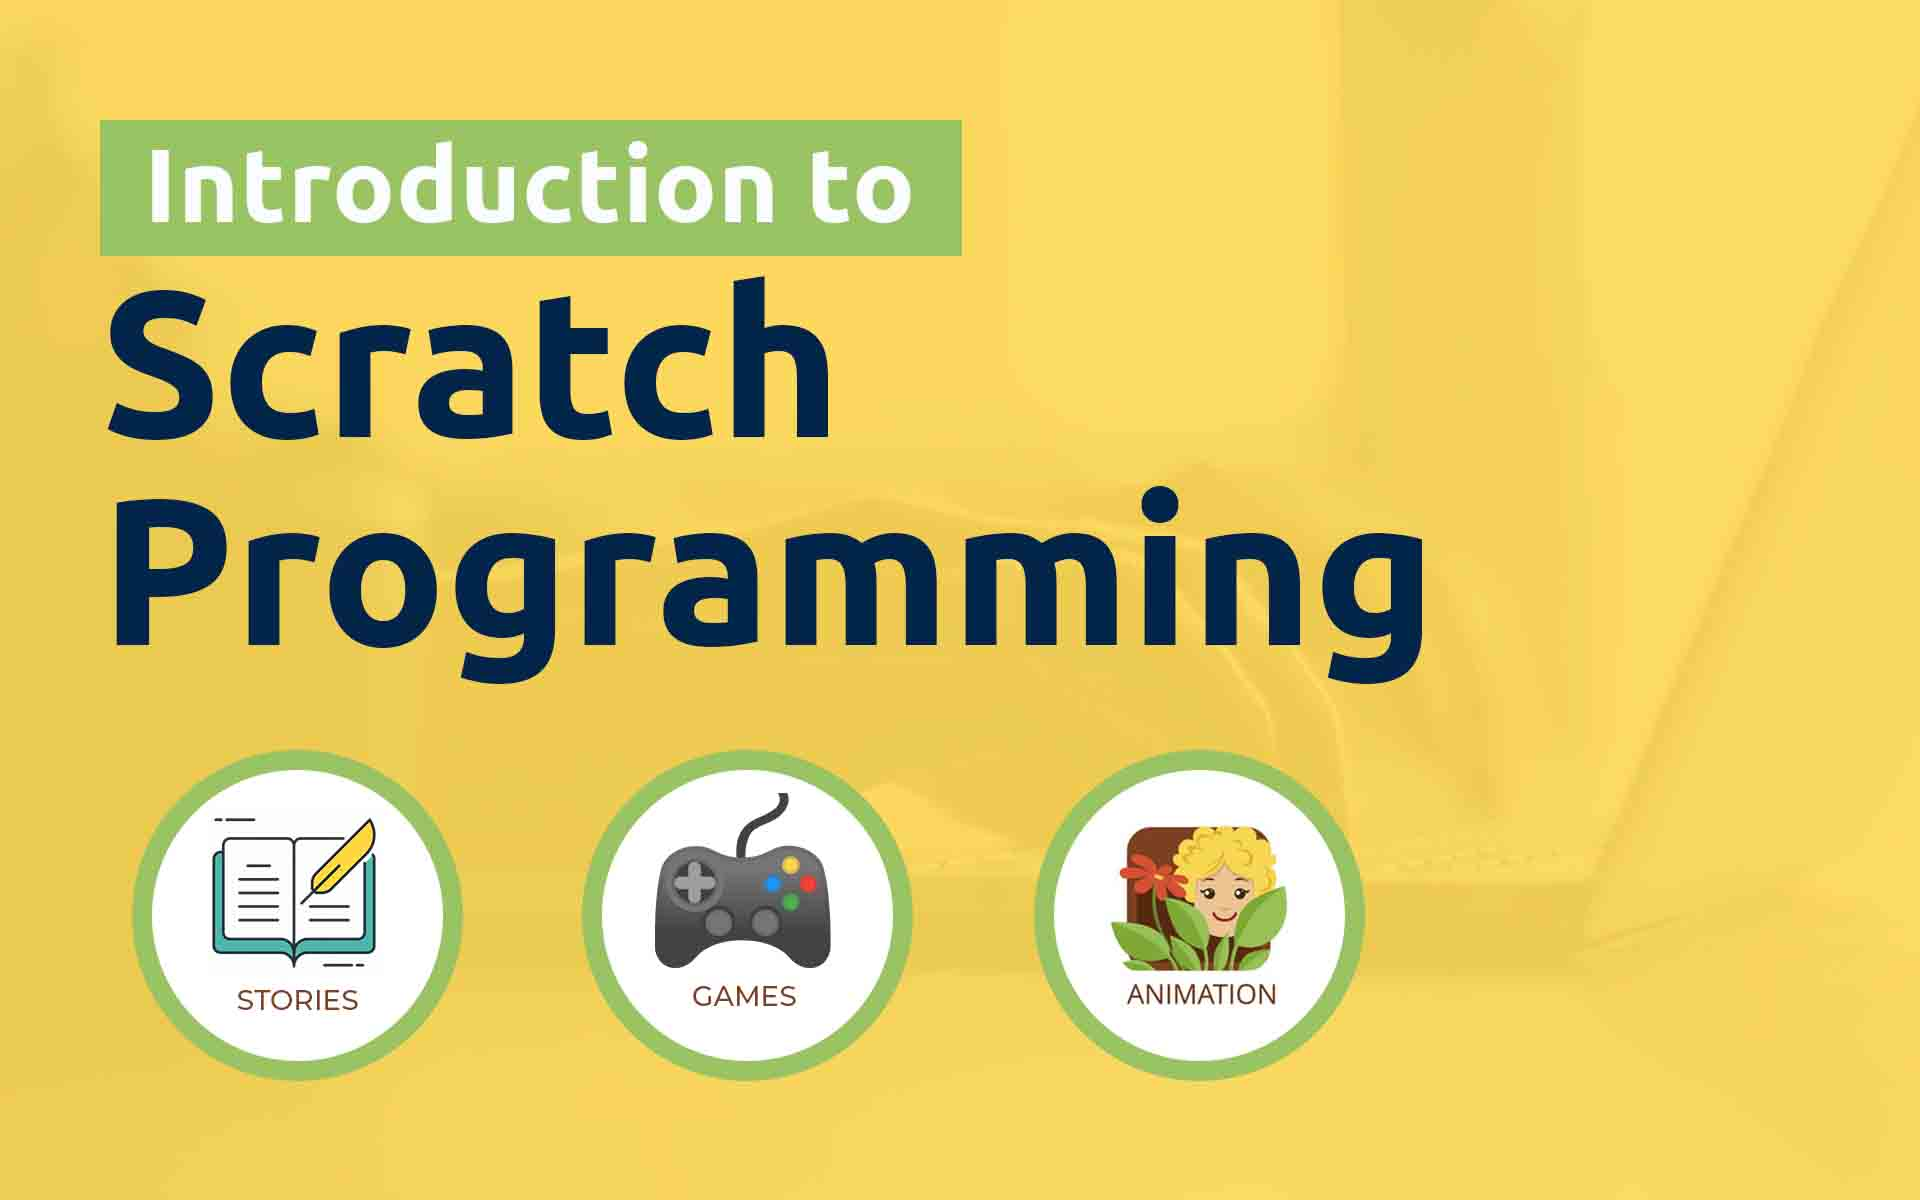 Scratch Programming | 7 - 15 yrs (Interactive Animations + Games)